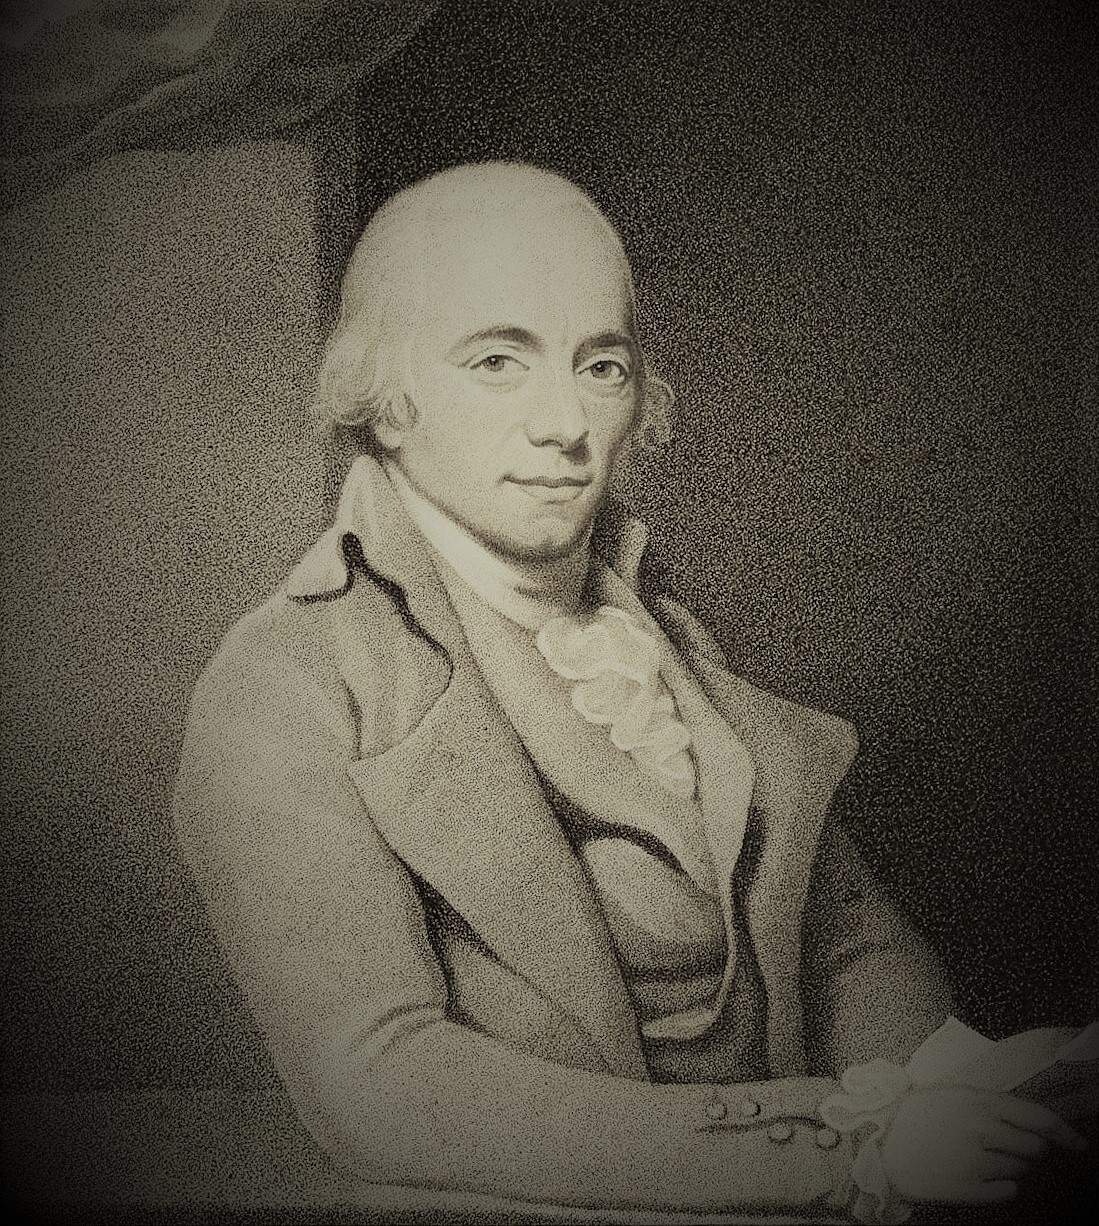 Clementi: An insight into his life and achievements